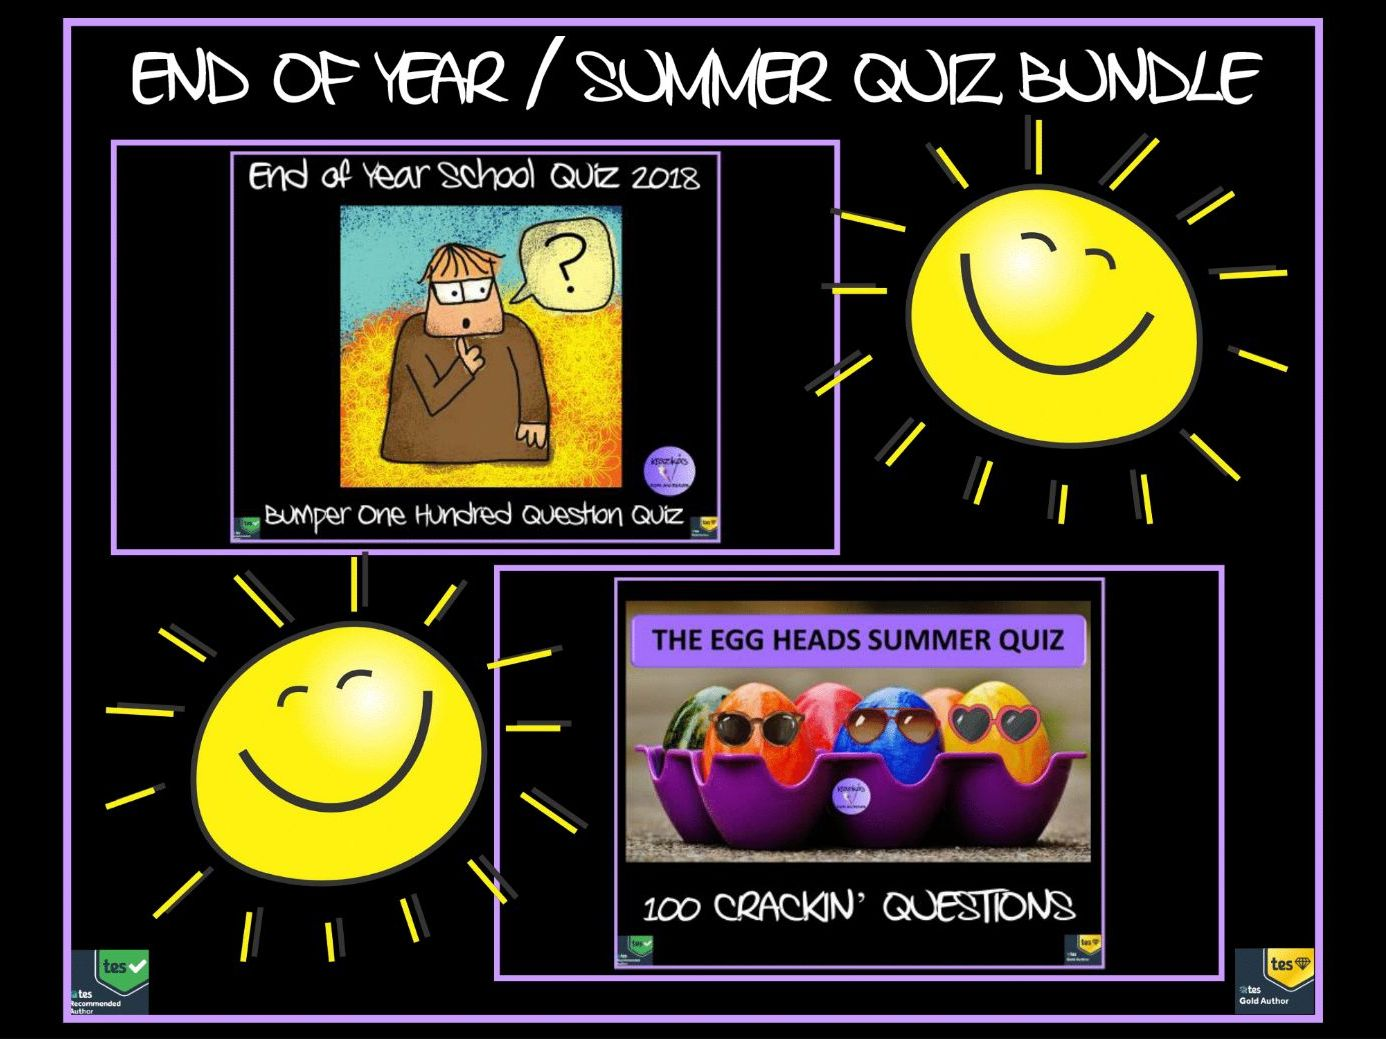 End of Year / Summer Quiz Bundle